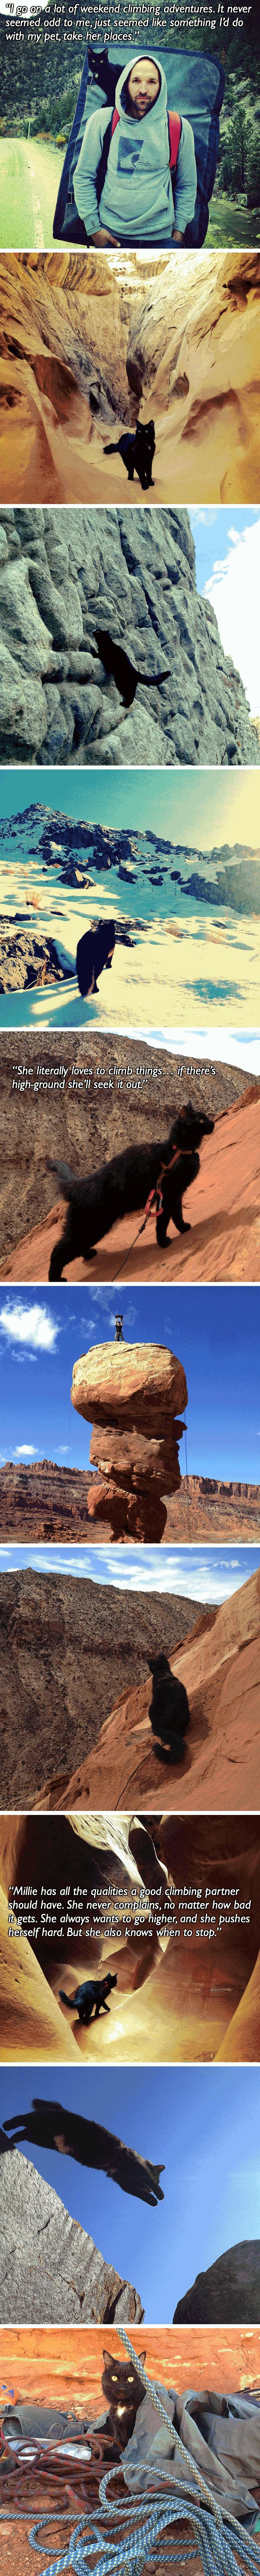 Meet Millie, the mountain climbing cat...this is so cool!